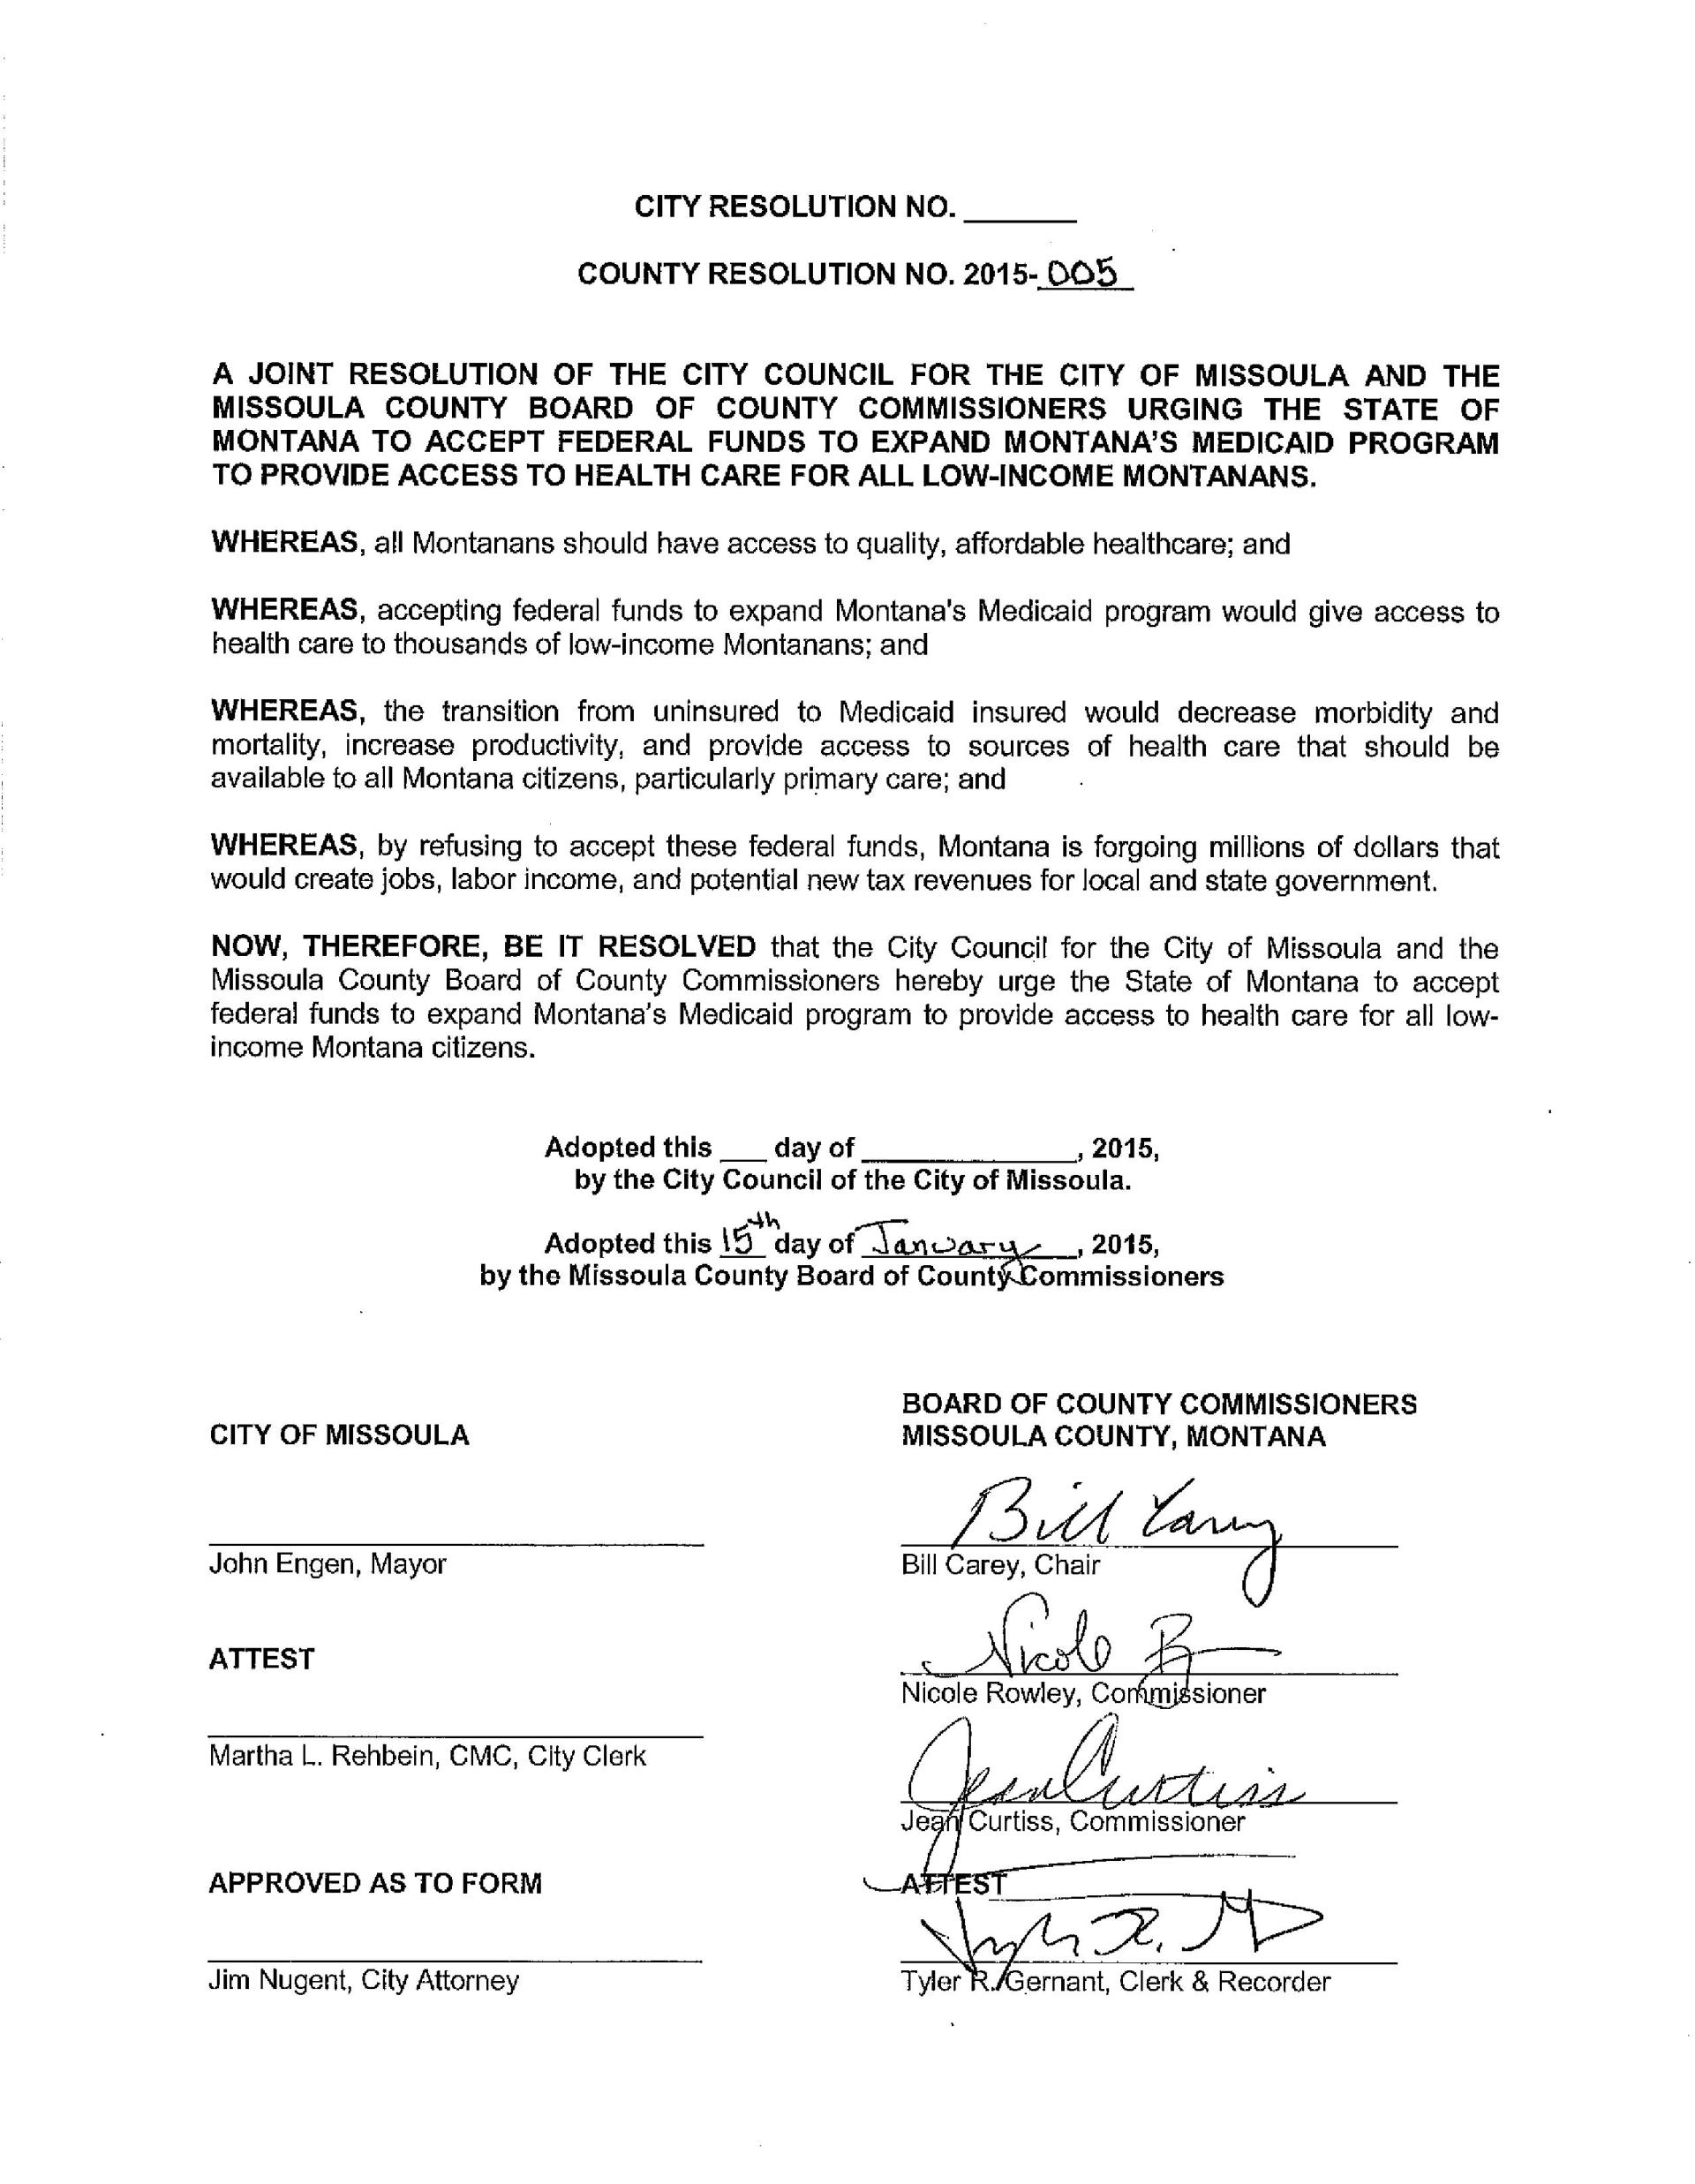 Example Of A Missoula County Resolution, Signed Early 2015